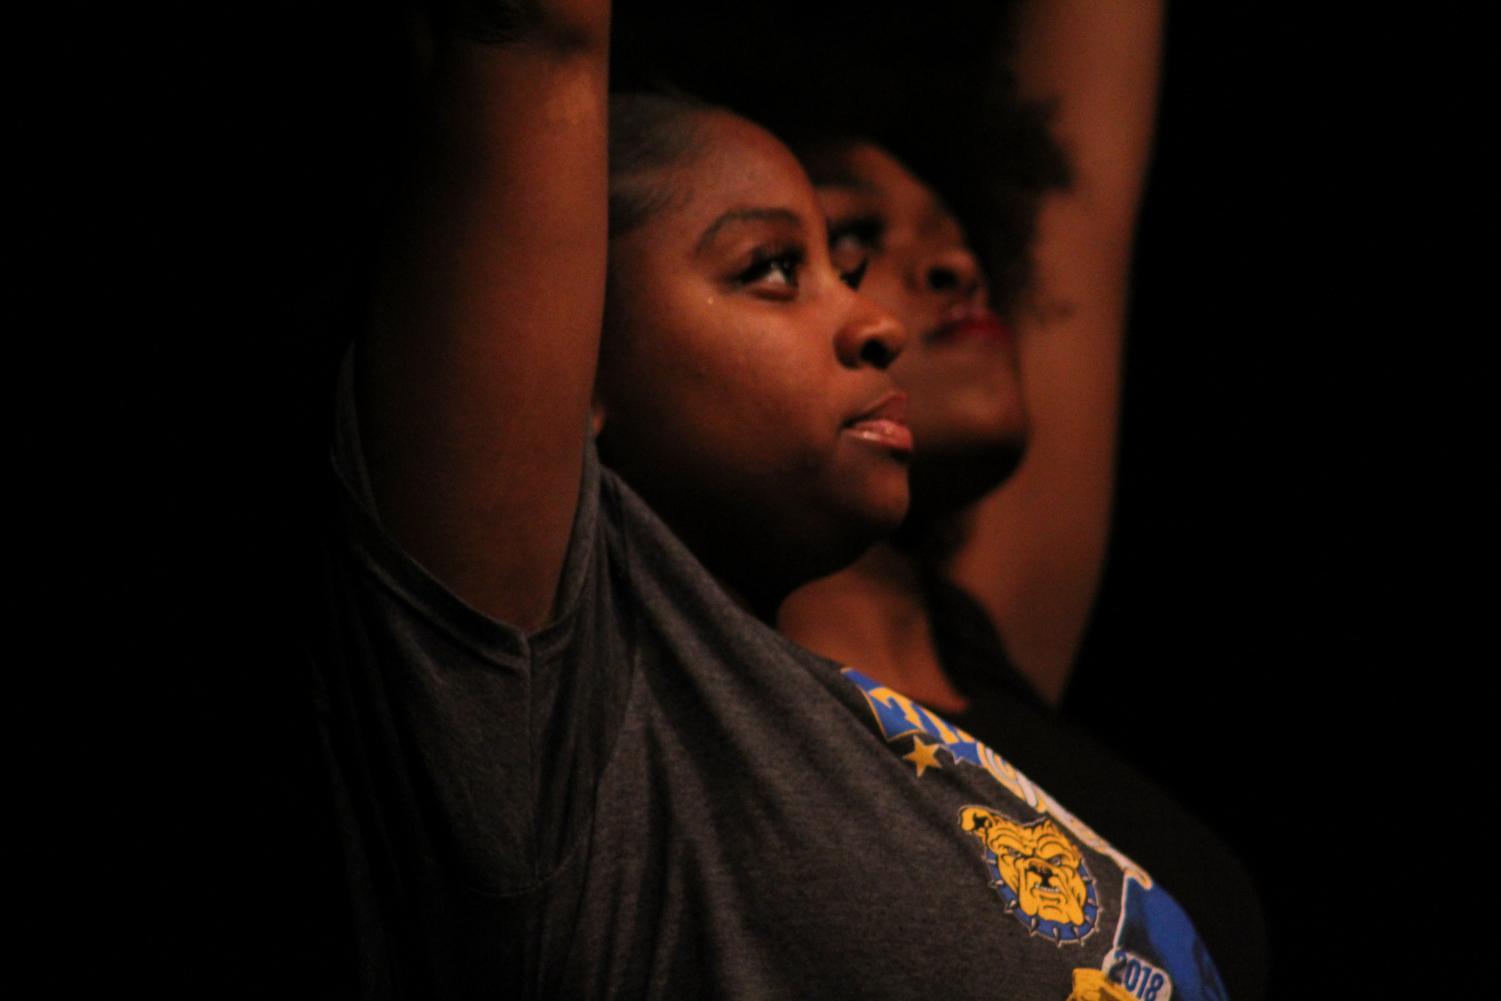 Kayleah Turner, 12, dances during the tribute to former North Counselor, Christopher Wiley, at the Black History Month Program on February 28th.  Photo by Caitlin Pieters